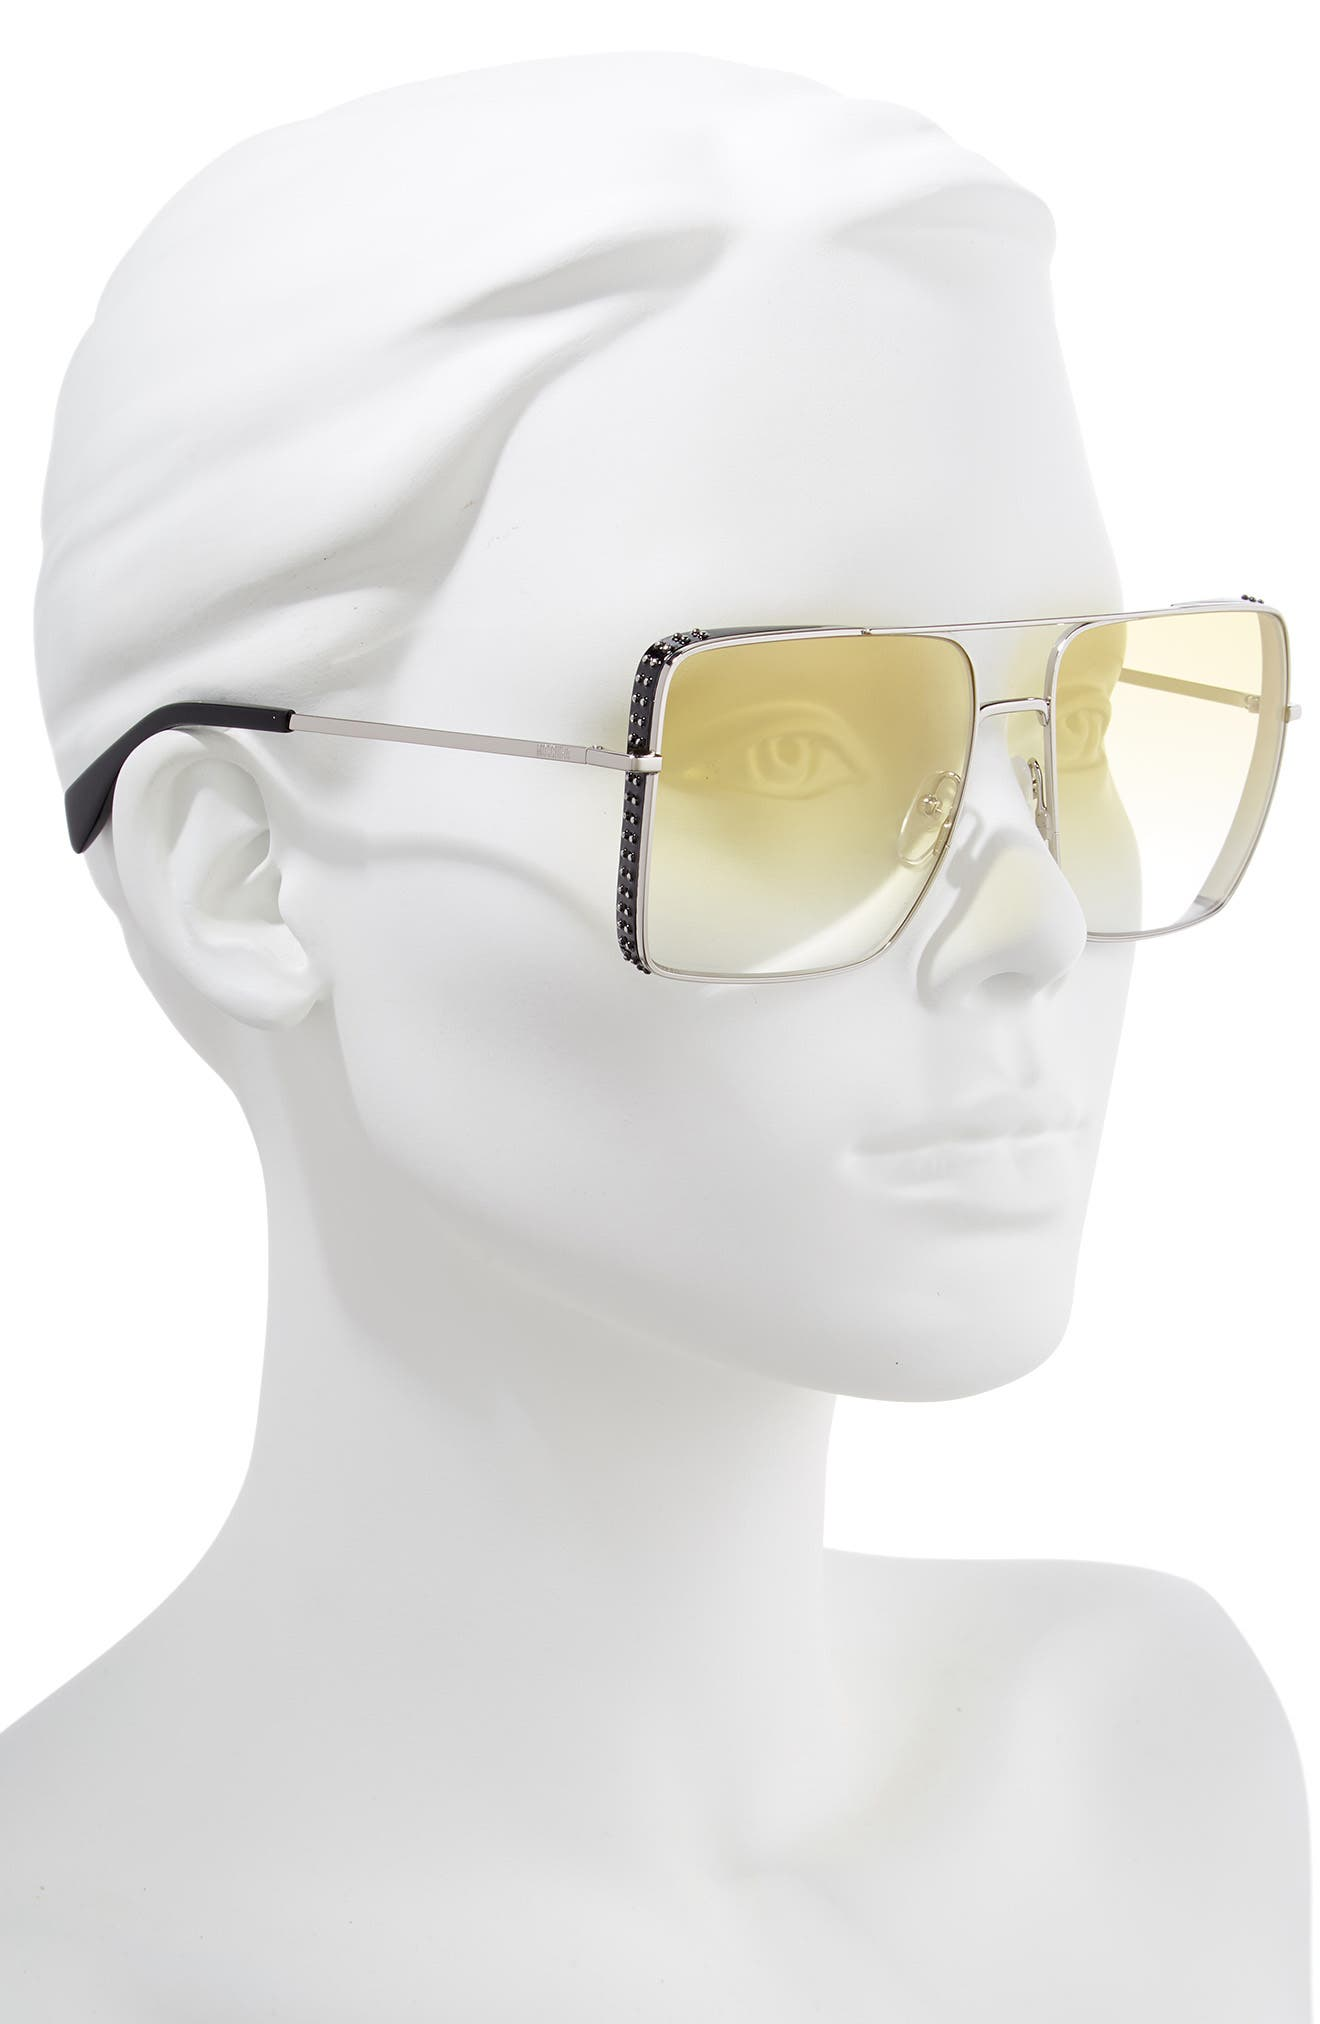 MOSCHINO, 50mm Square Flat Top Sunglasses, Alternate thumbnail 2, color, PALLADIUM